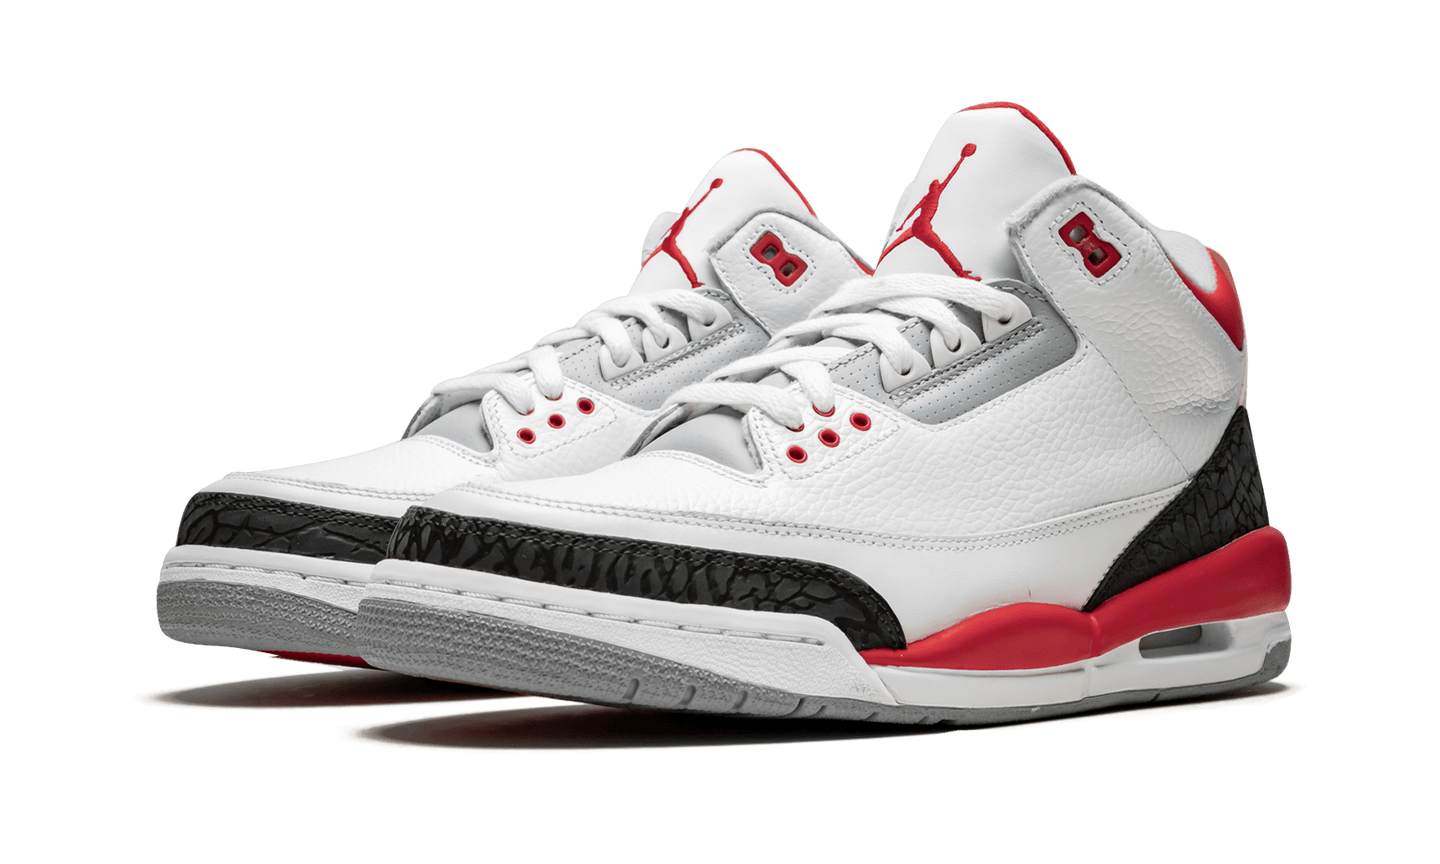 Jordan Air Jordan 3 Retro 'Fire Red' - Street Peek